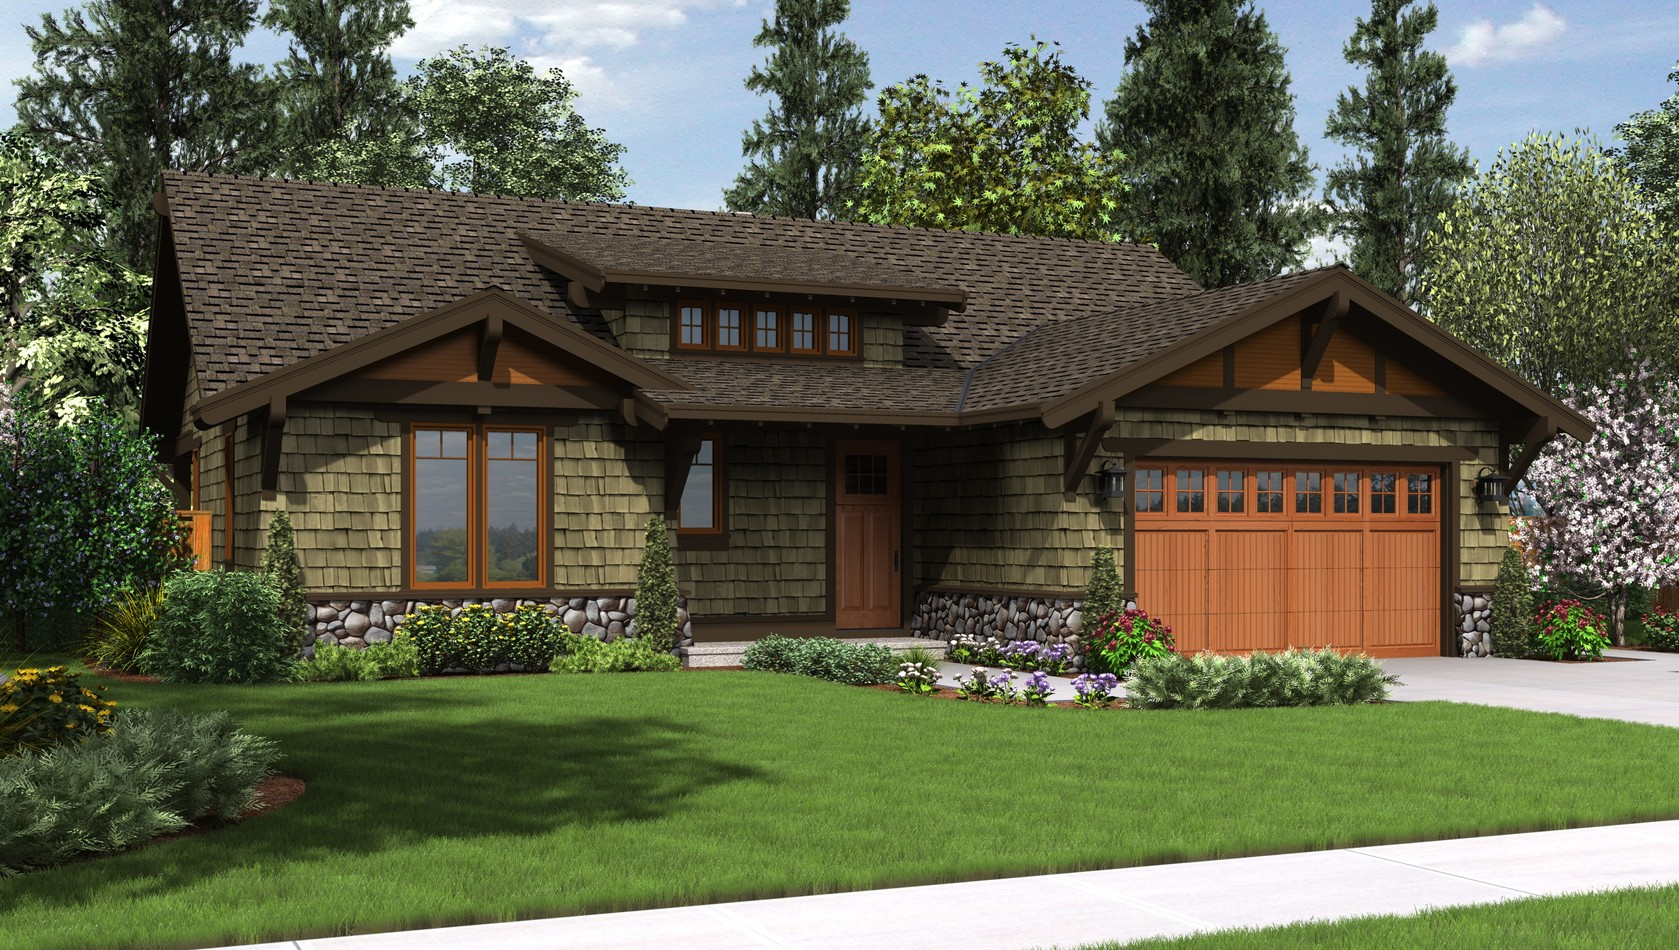 Mascord House Plan 1169A: The Pasadena